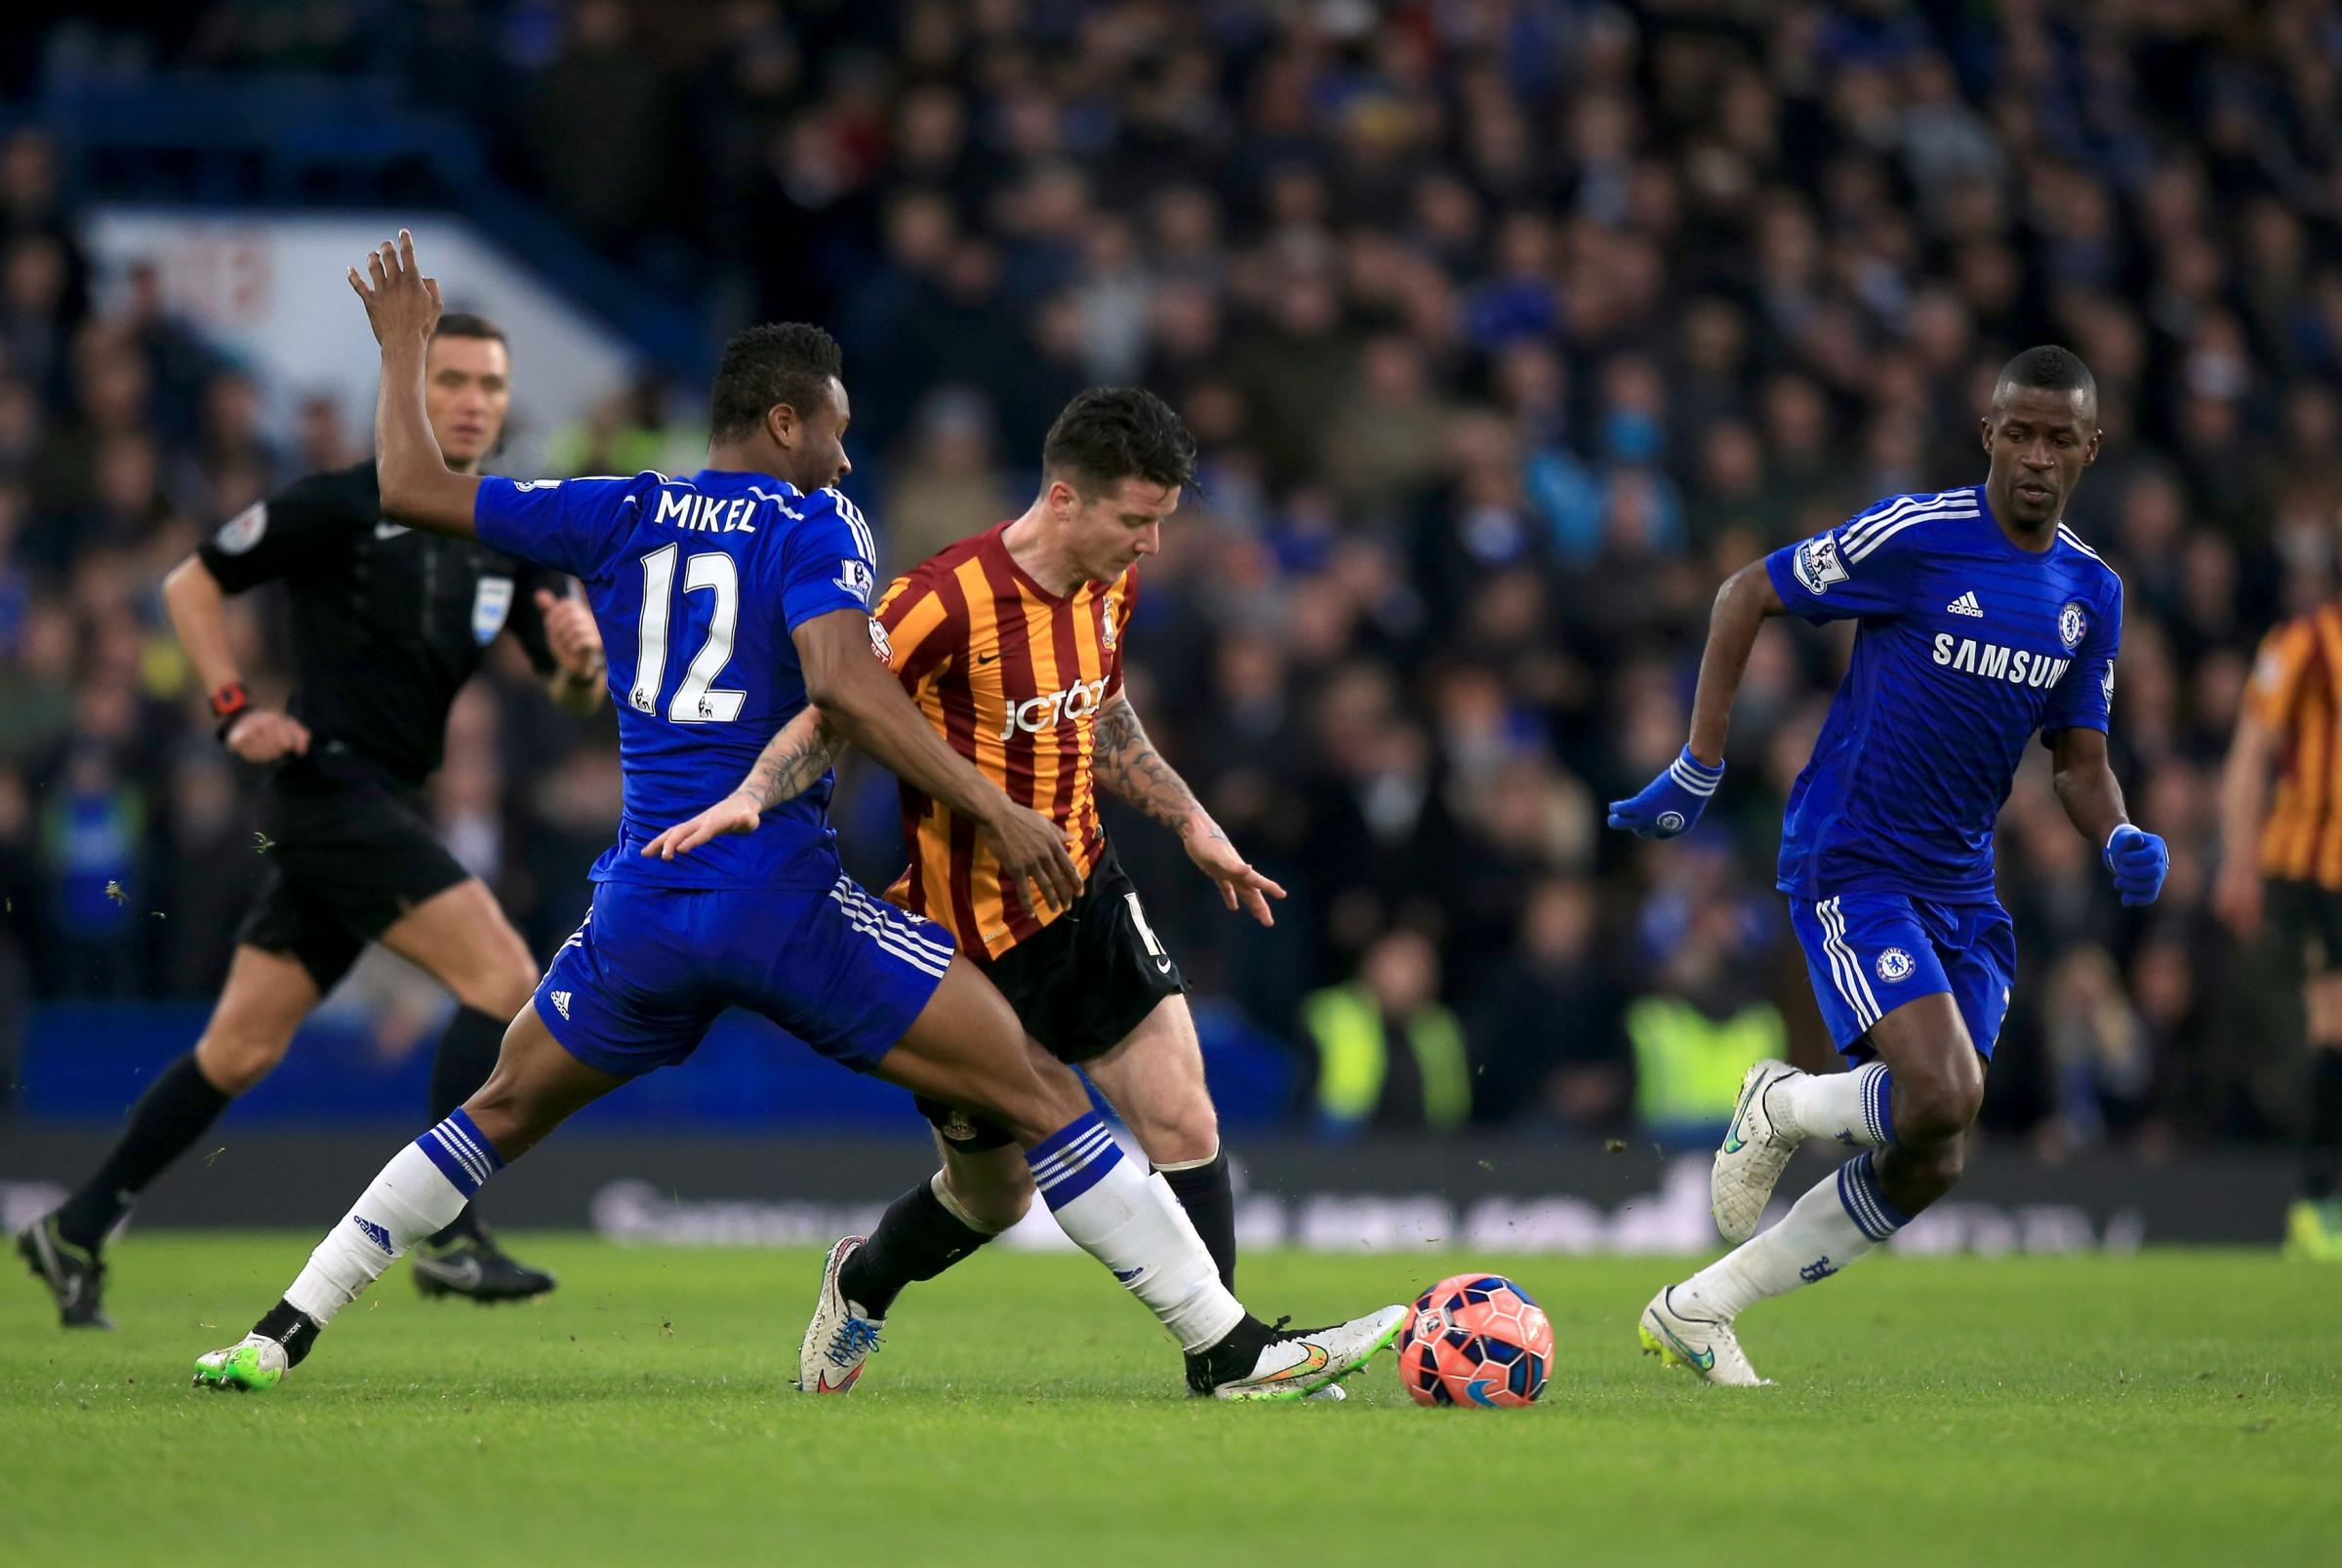 CENTRE STAGE: Billy Knott glides past John Obi Mikel during Bradford's fourth-round win at Chelsea